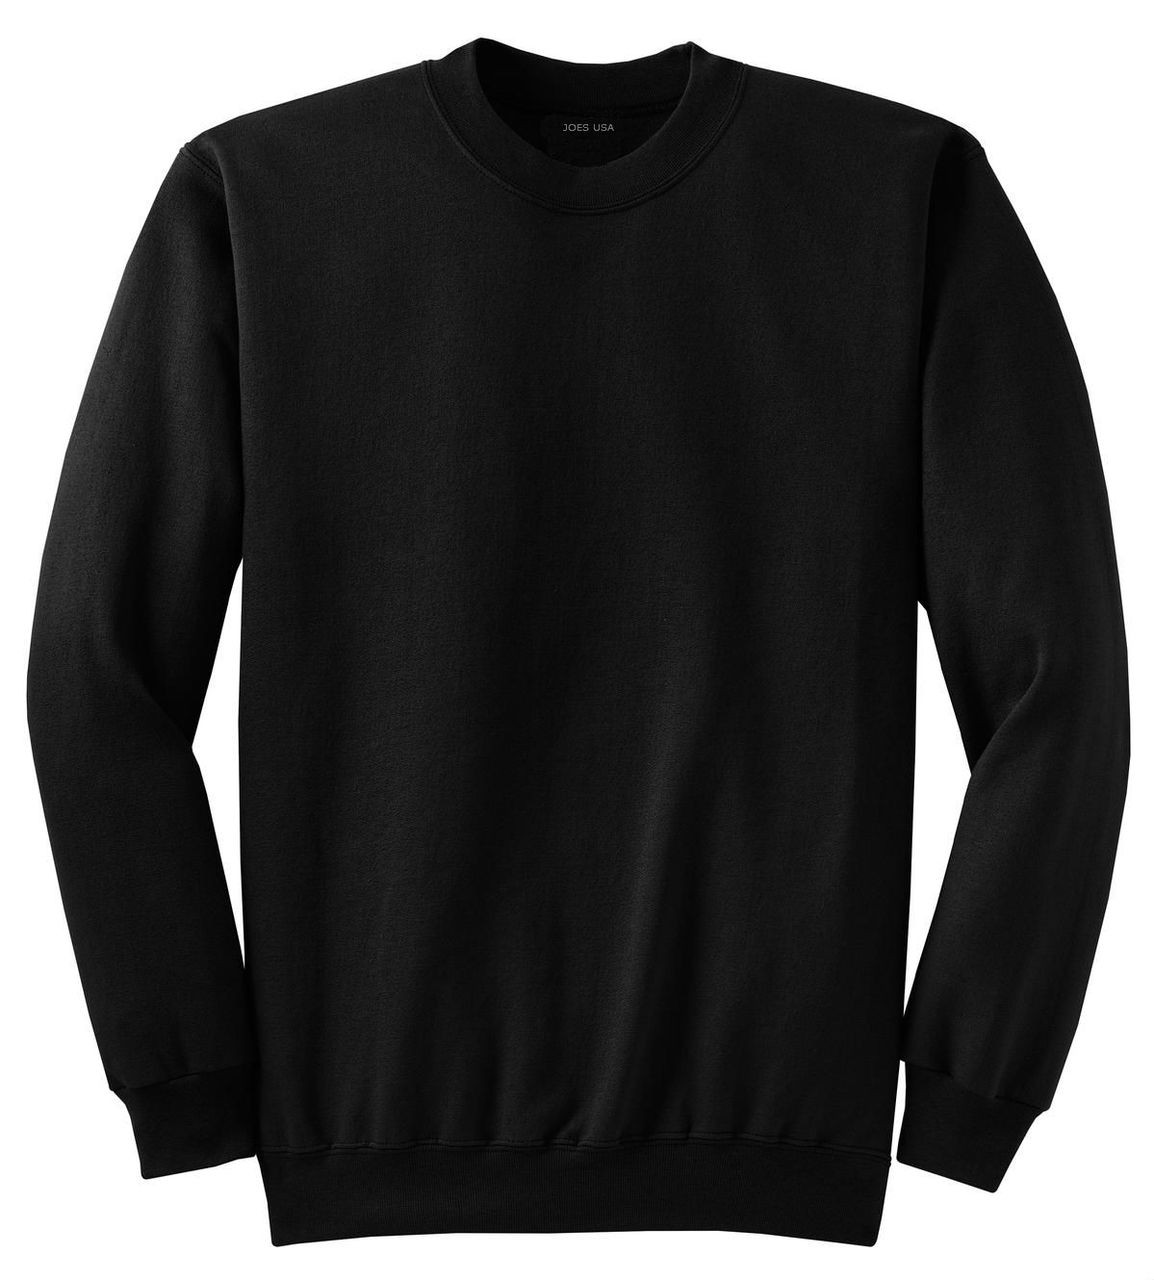 803b2de50d8 Joe's USA - Men's Big and Tall Ultimate Crewneck Sweatshirts in 20 Colors